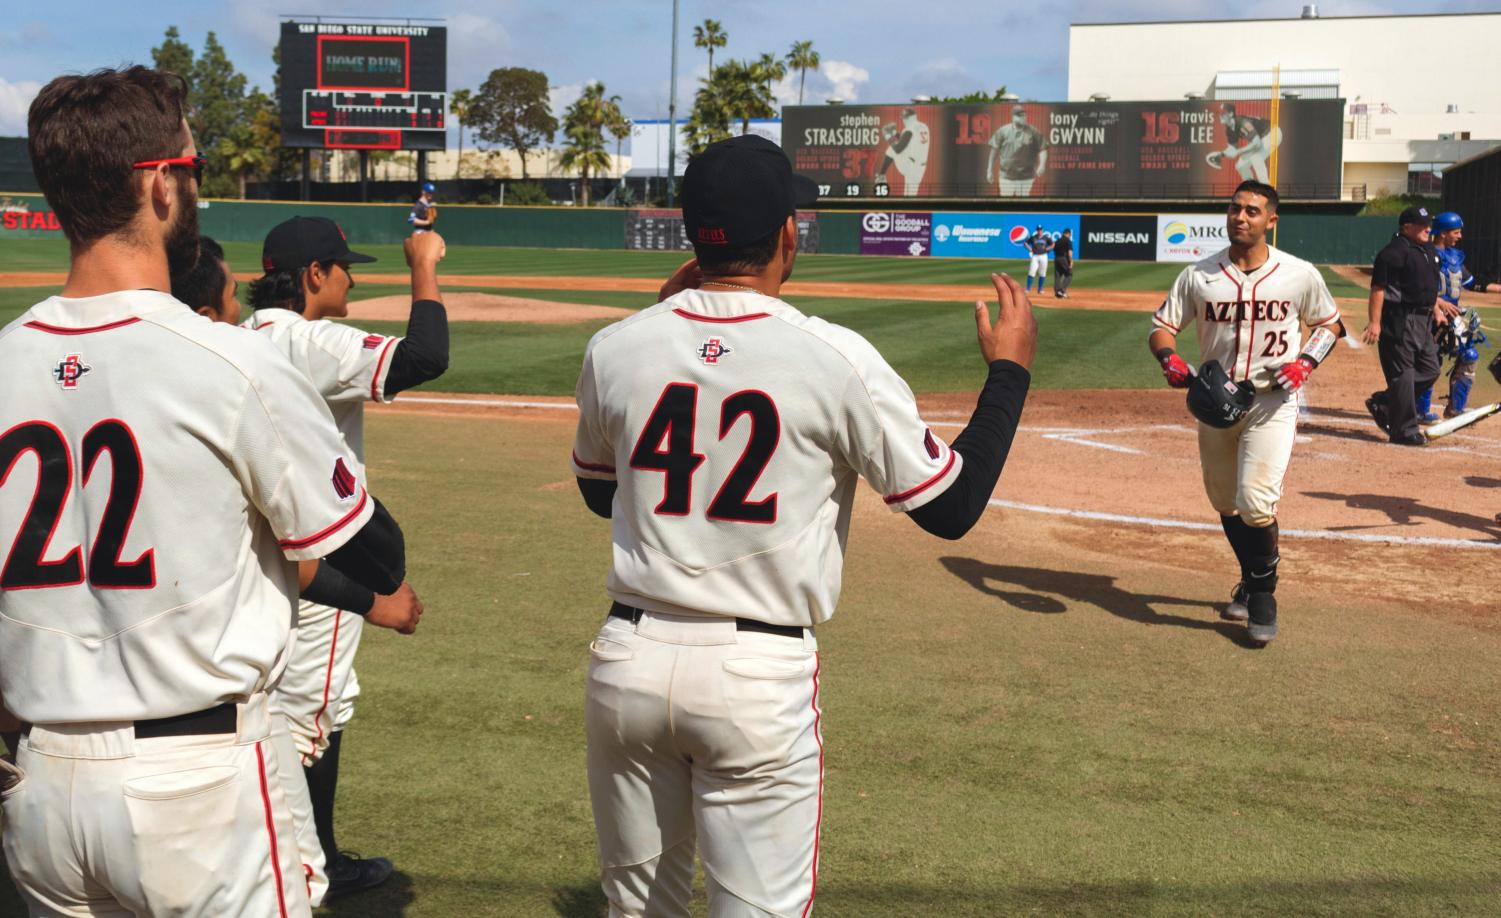 Junior catcher Dean Nevarez heads back to the dugout to celebrate with his teammates after hitting a home run during the Aztecs 3-2 victory over Air Force on March 11 at Tony Gwynn Stadium.